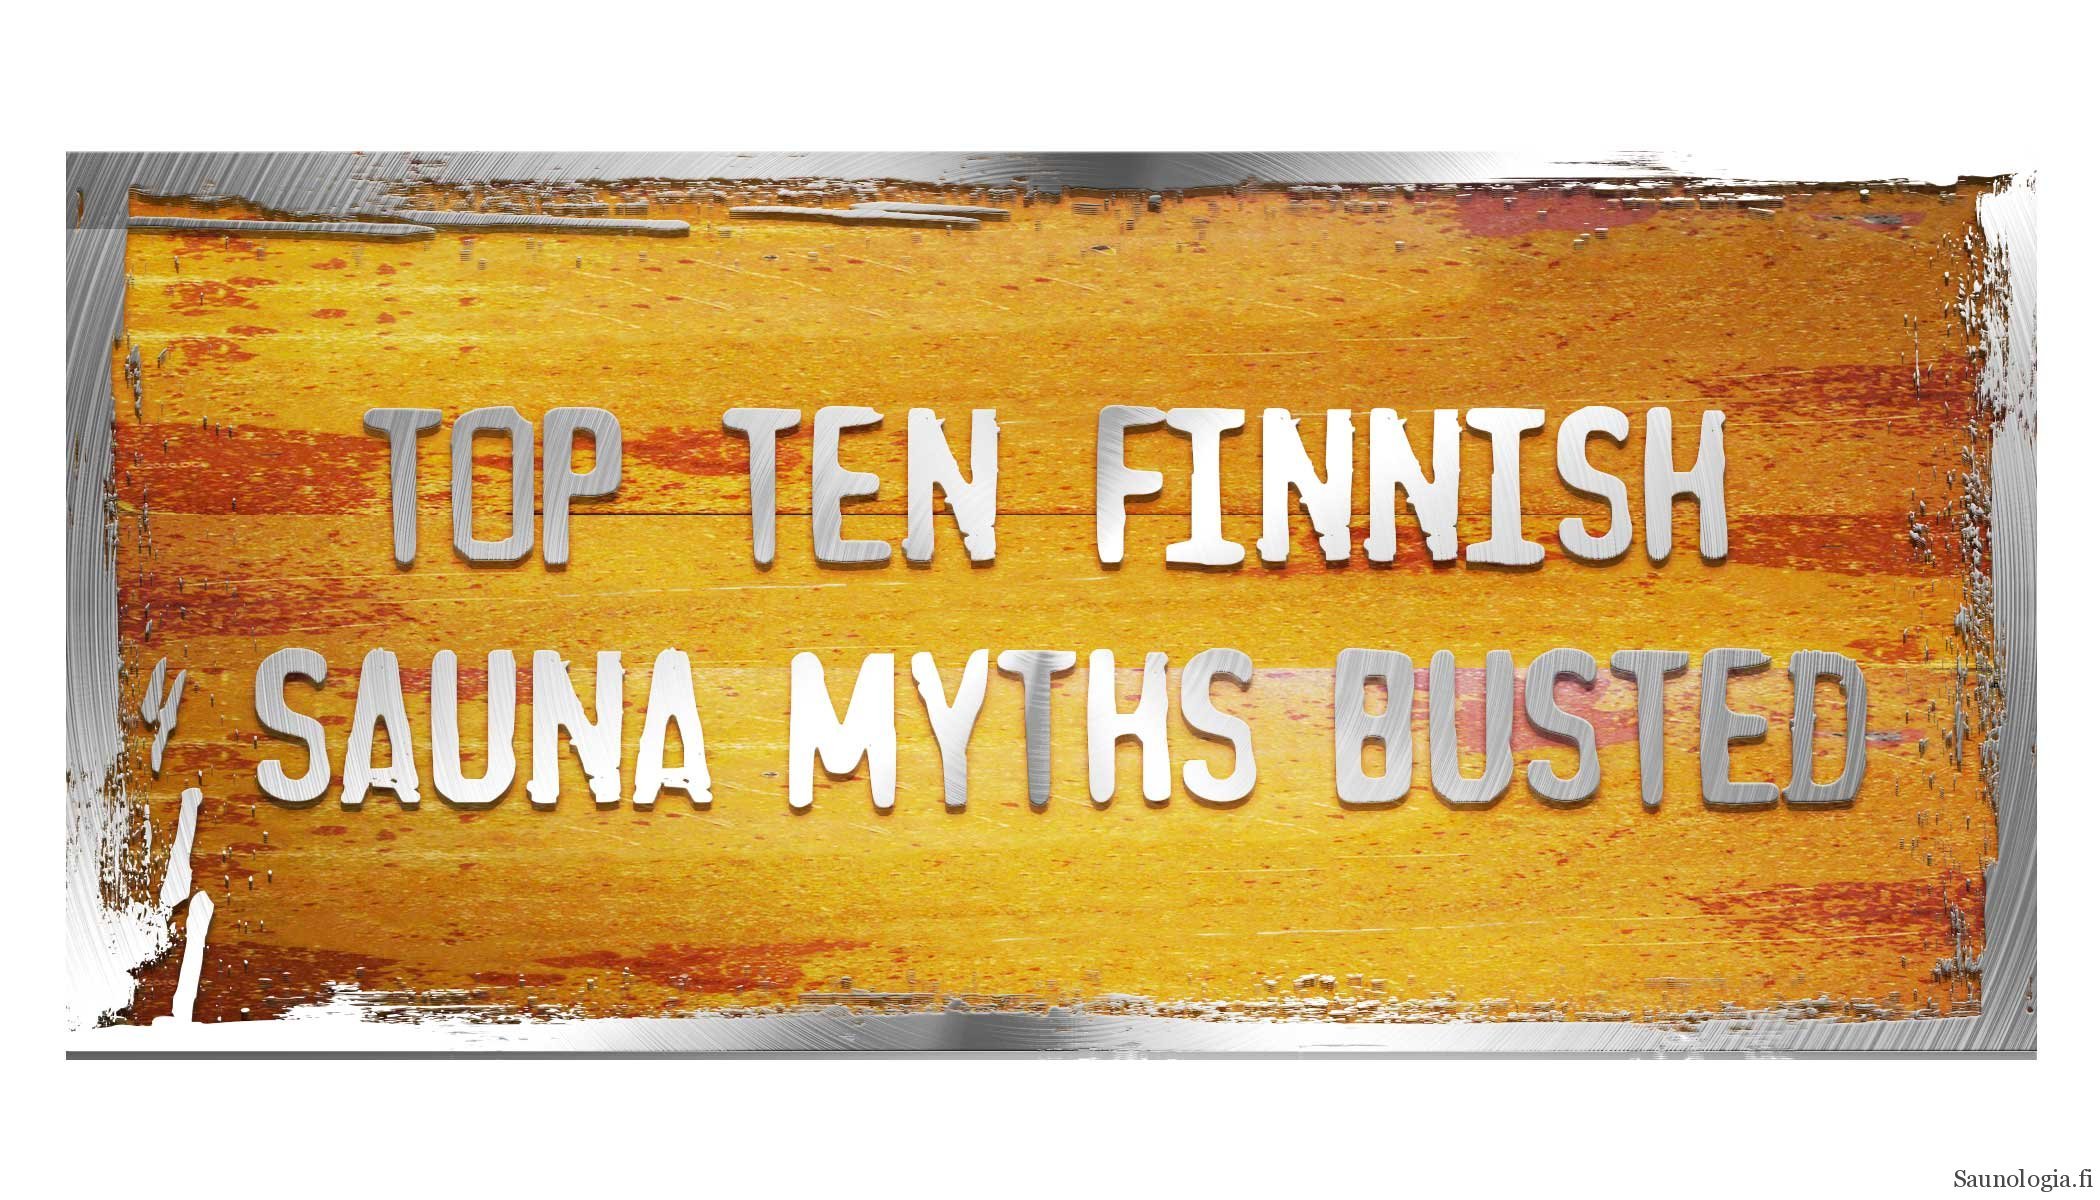 Top Ten Finnish Sauna Myths Busted